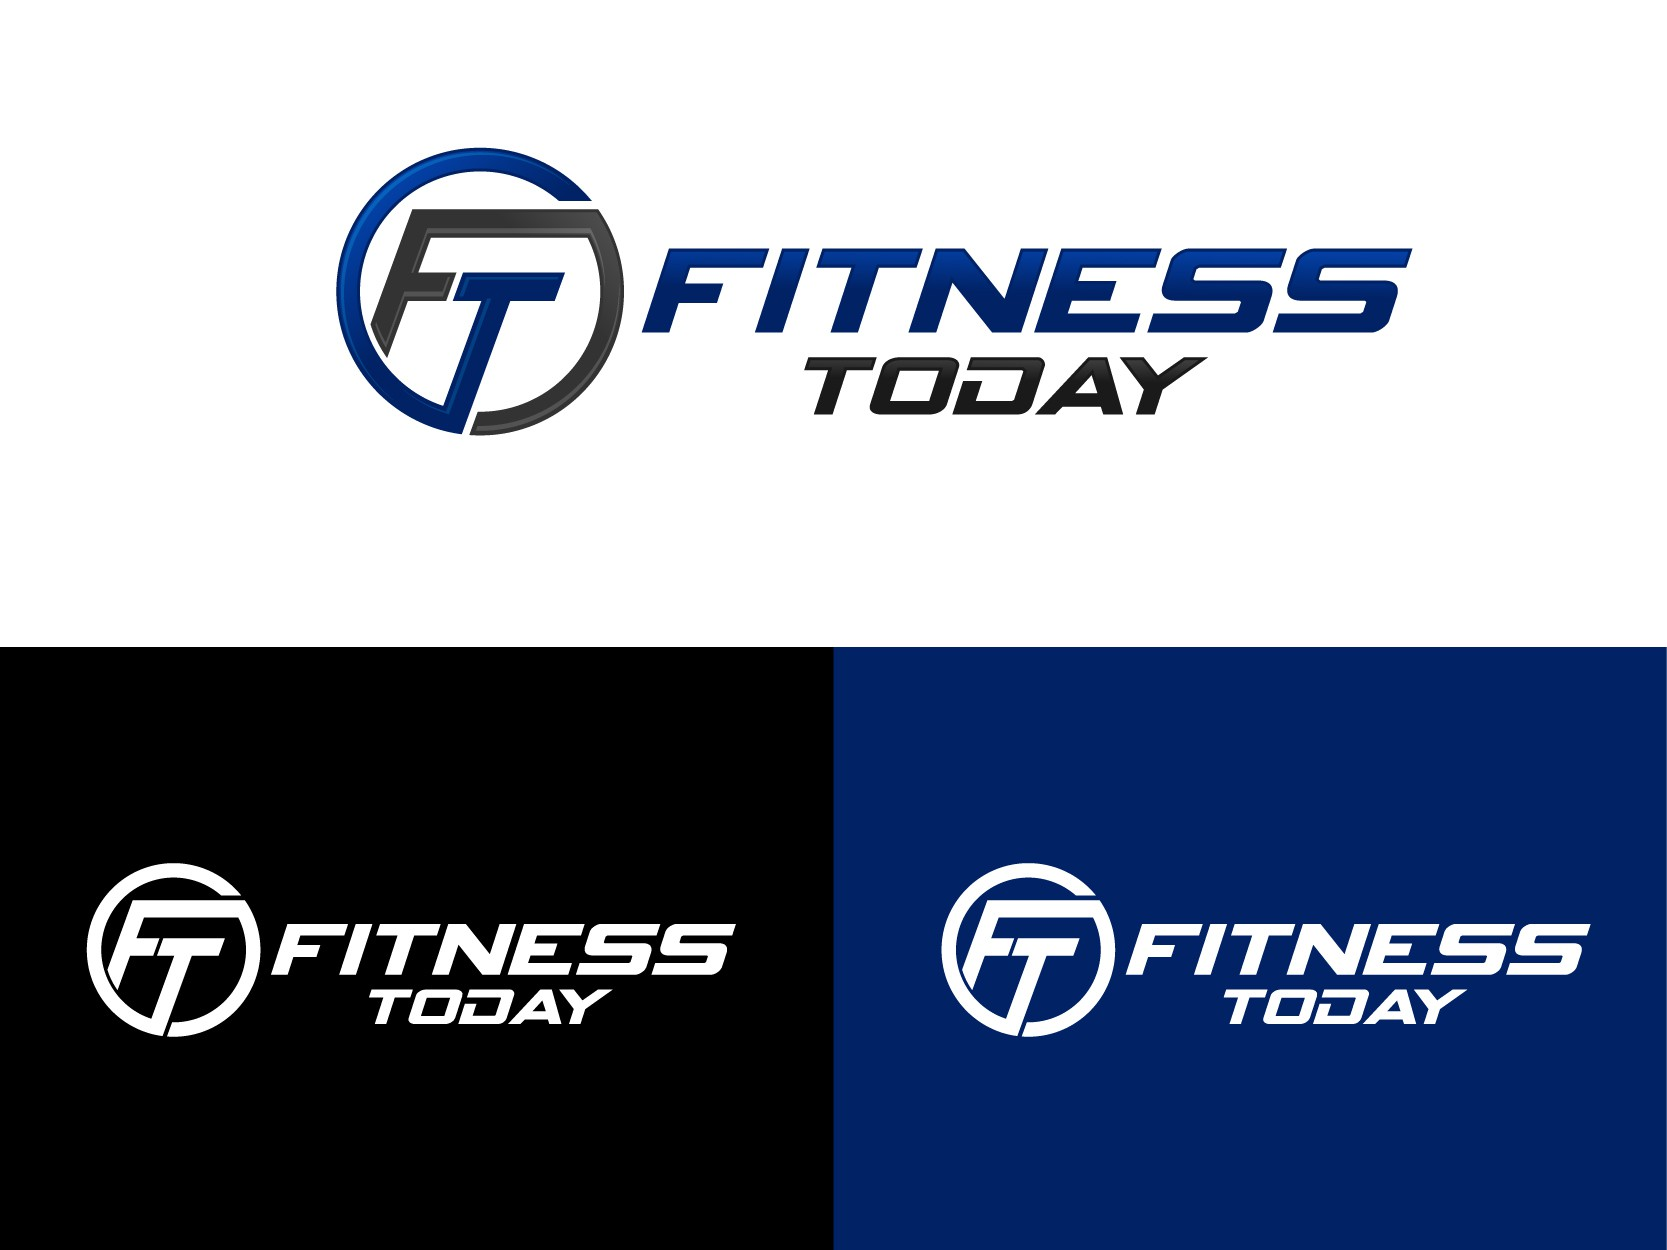 Create a capturing logo that will attract clients of all ages in the fitness and wellness industry.